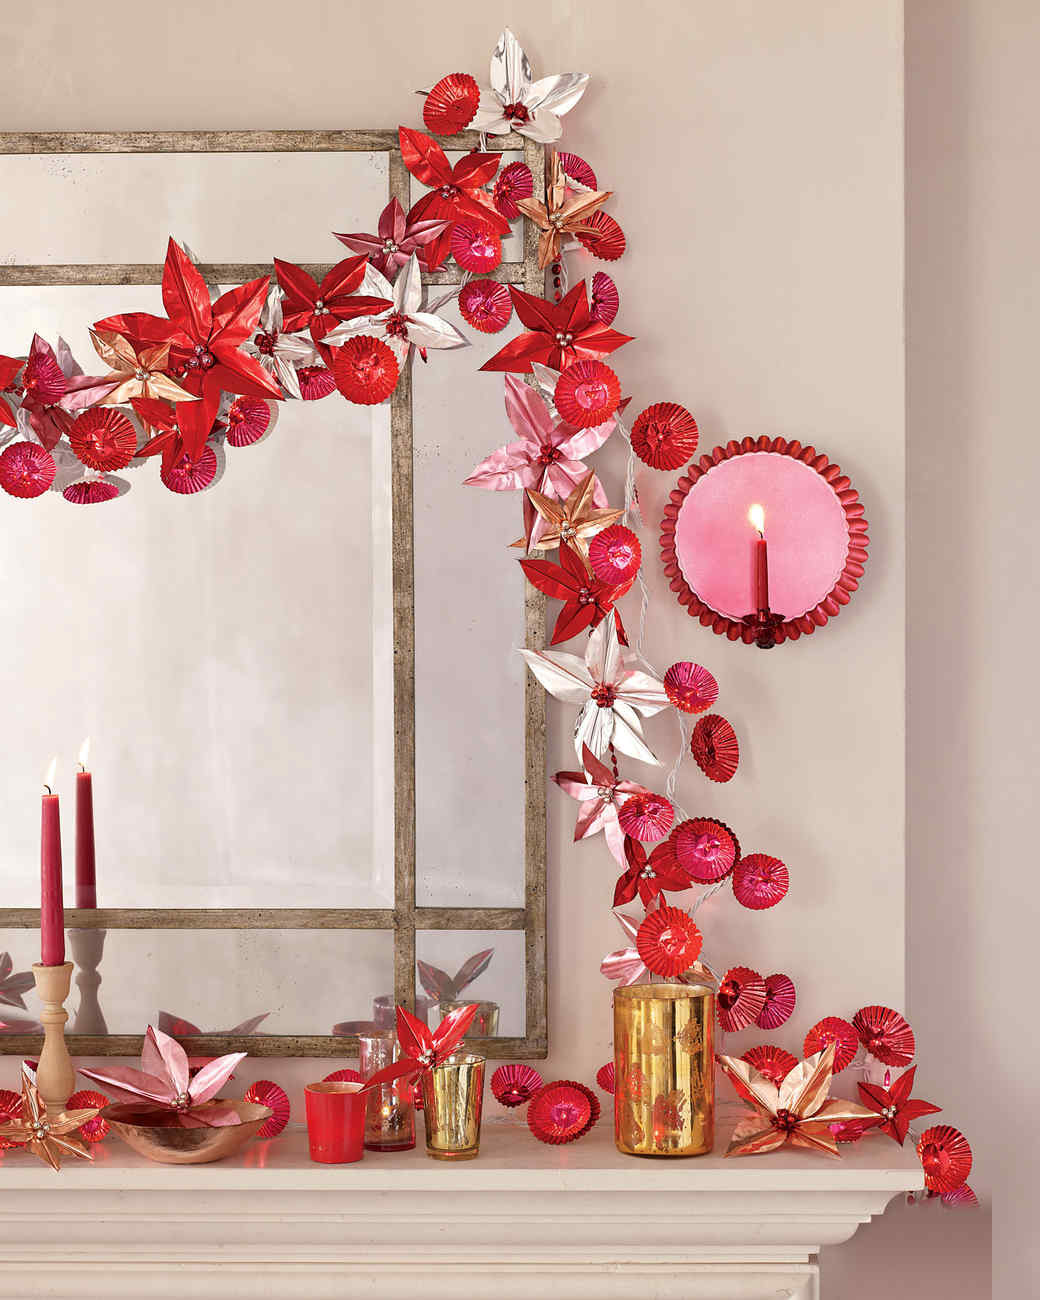 Best ideas about DIY Garland Christmas . Save or Pin DIY Christmas Tree Garland Ideas to Personalize Your Now.